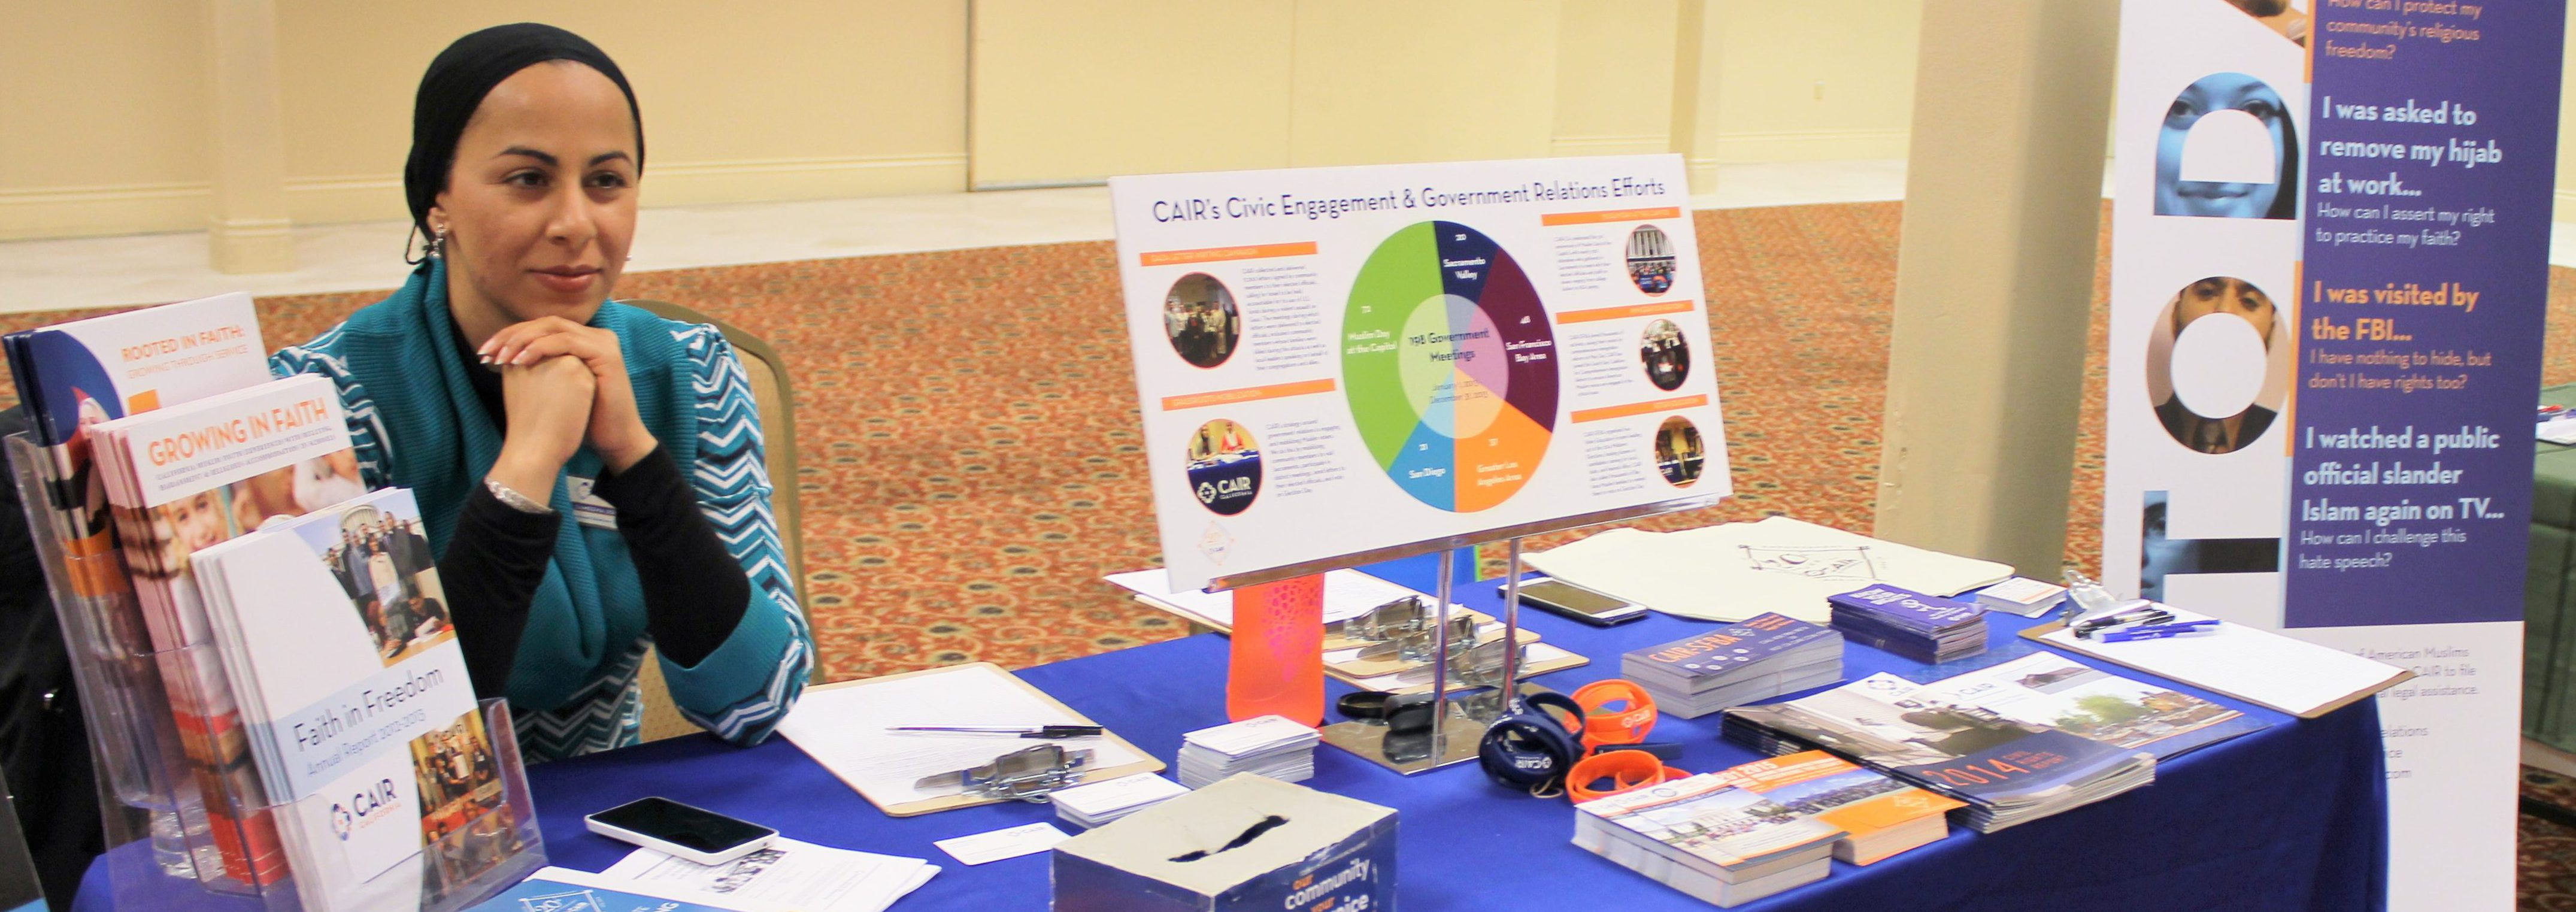 CAIR-SFBA Government Relations Coordinator, Sameena Usman, Tabling At A Community Event